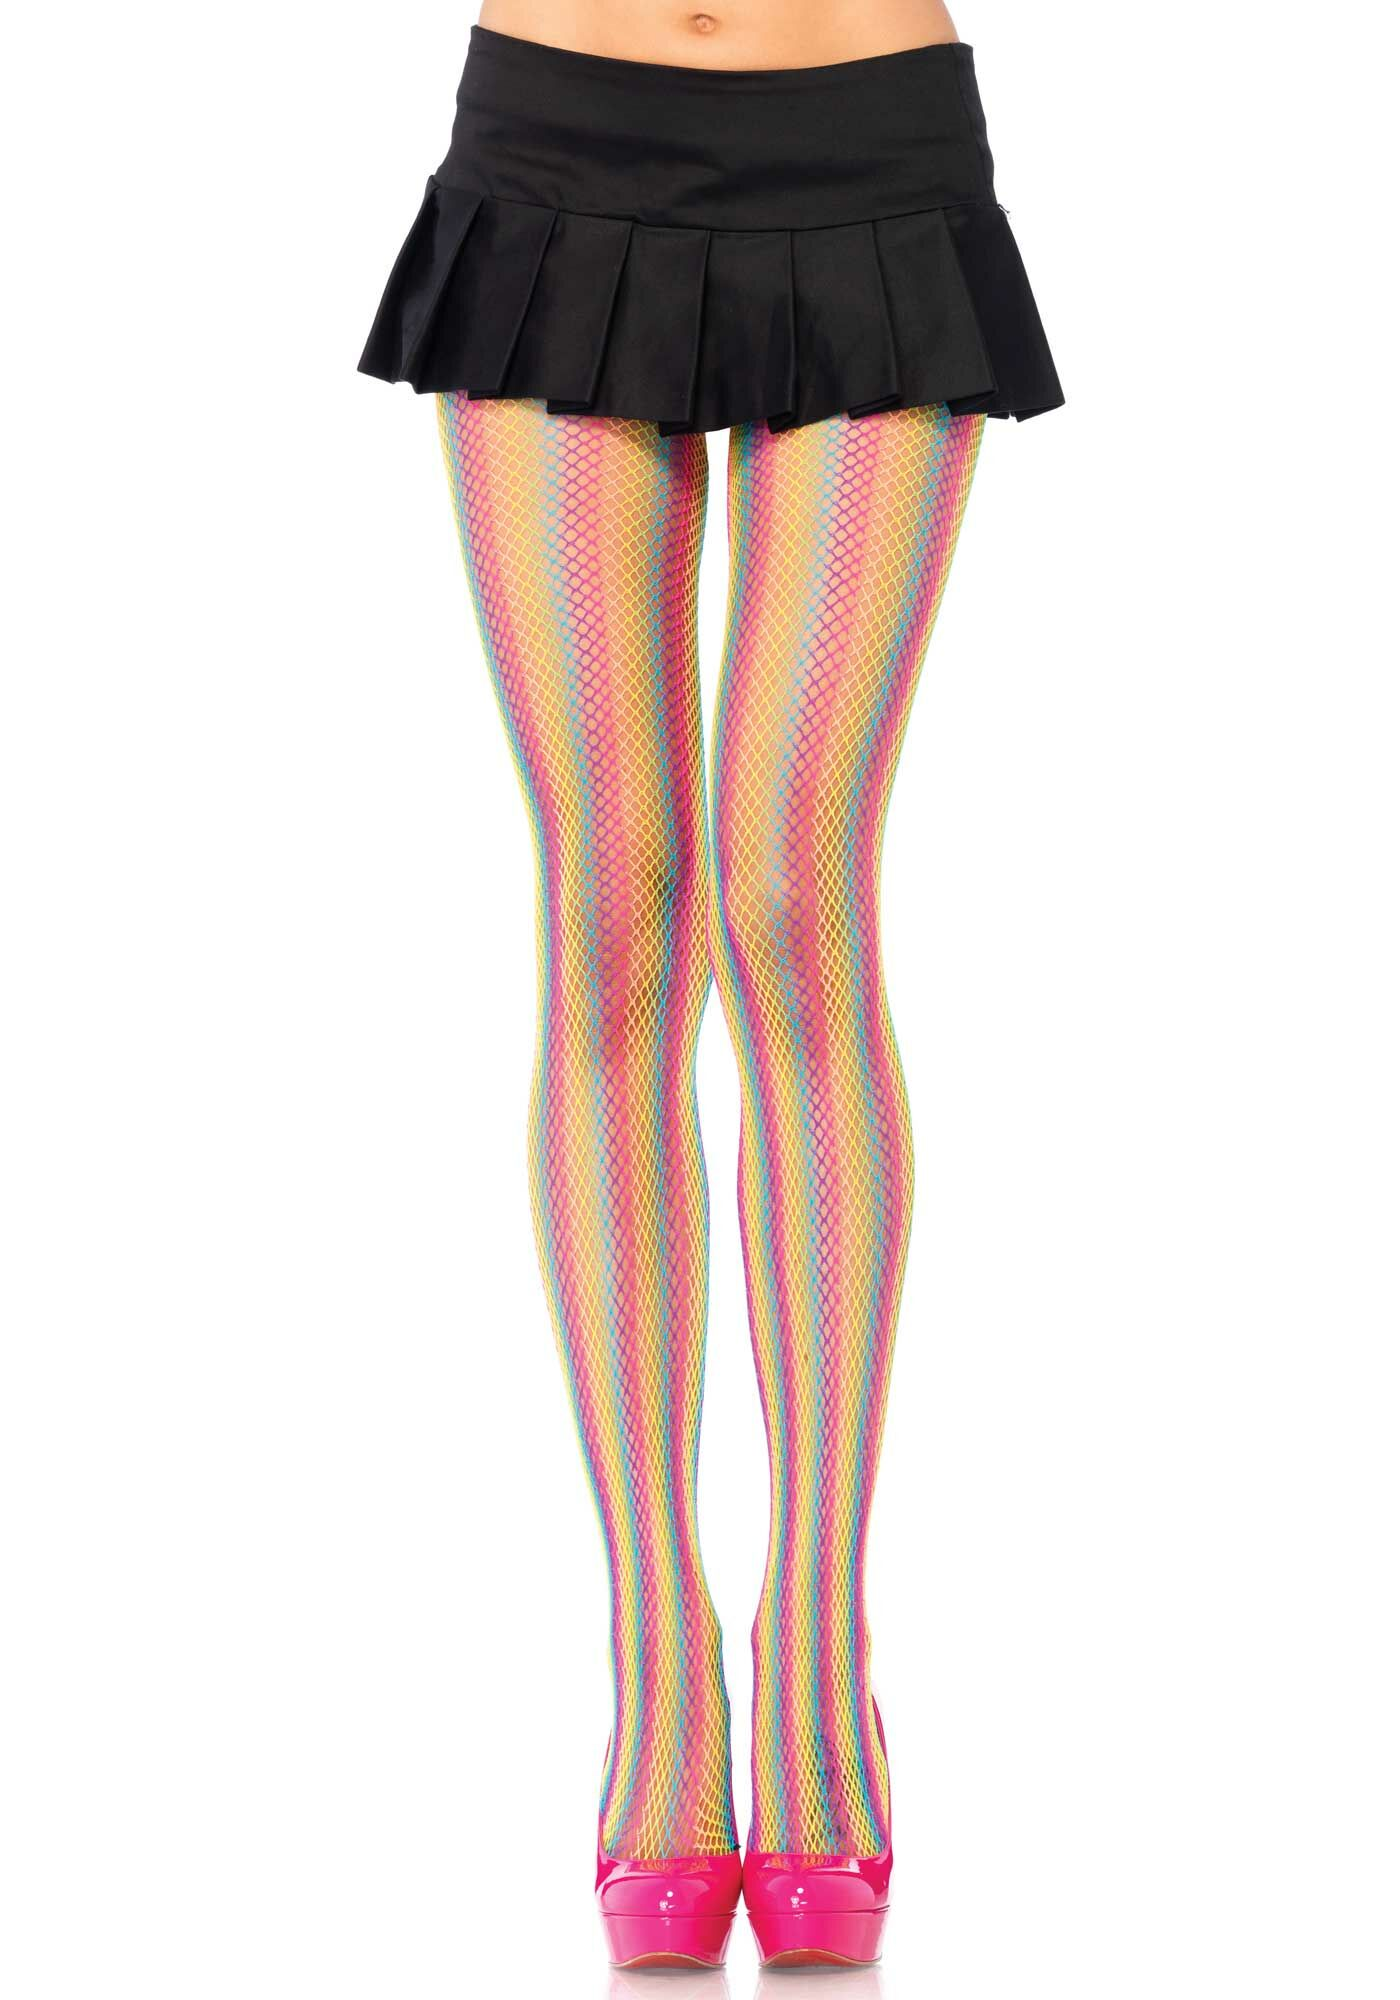 Neon Rainbow Striped Fishnet Tights